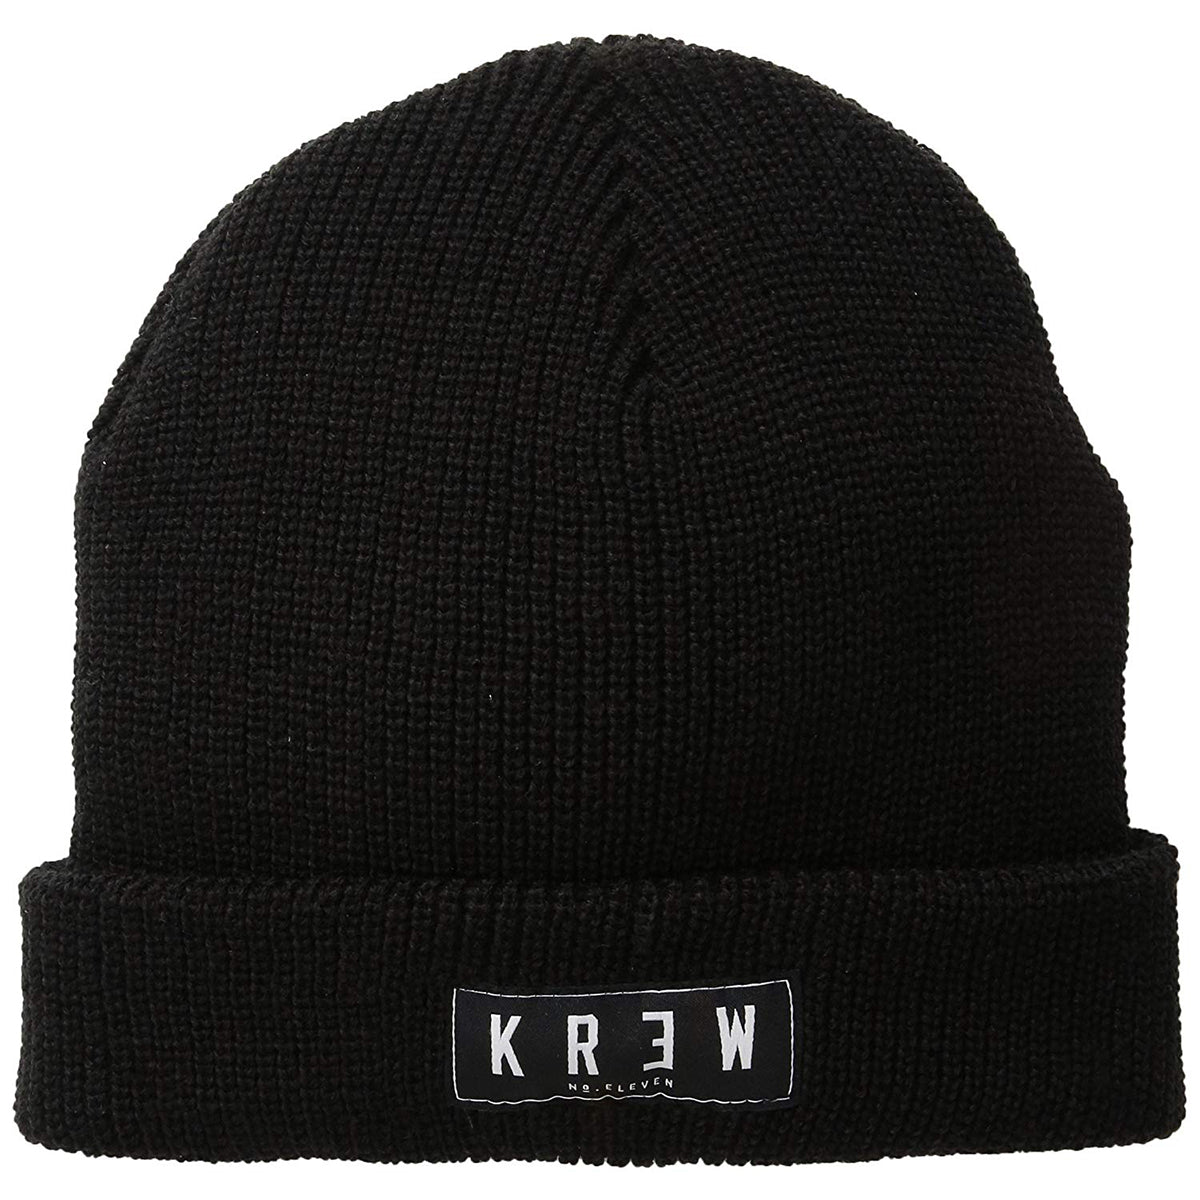 KR3W Cuff Men's Beanie Hats-K6531401